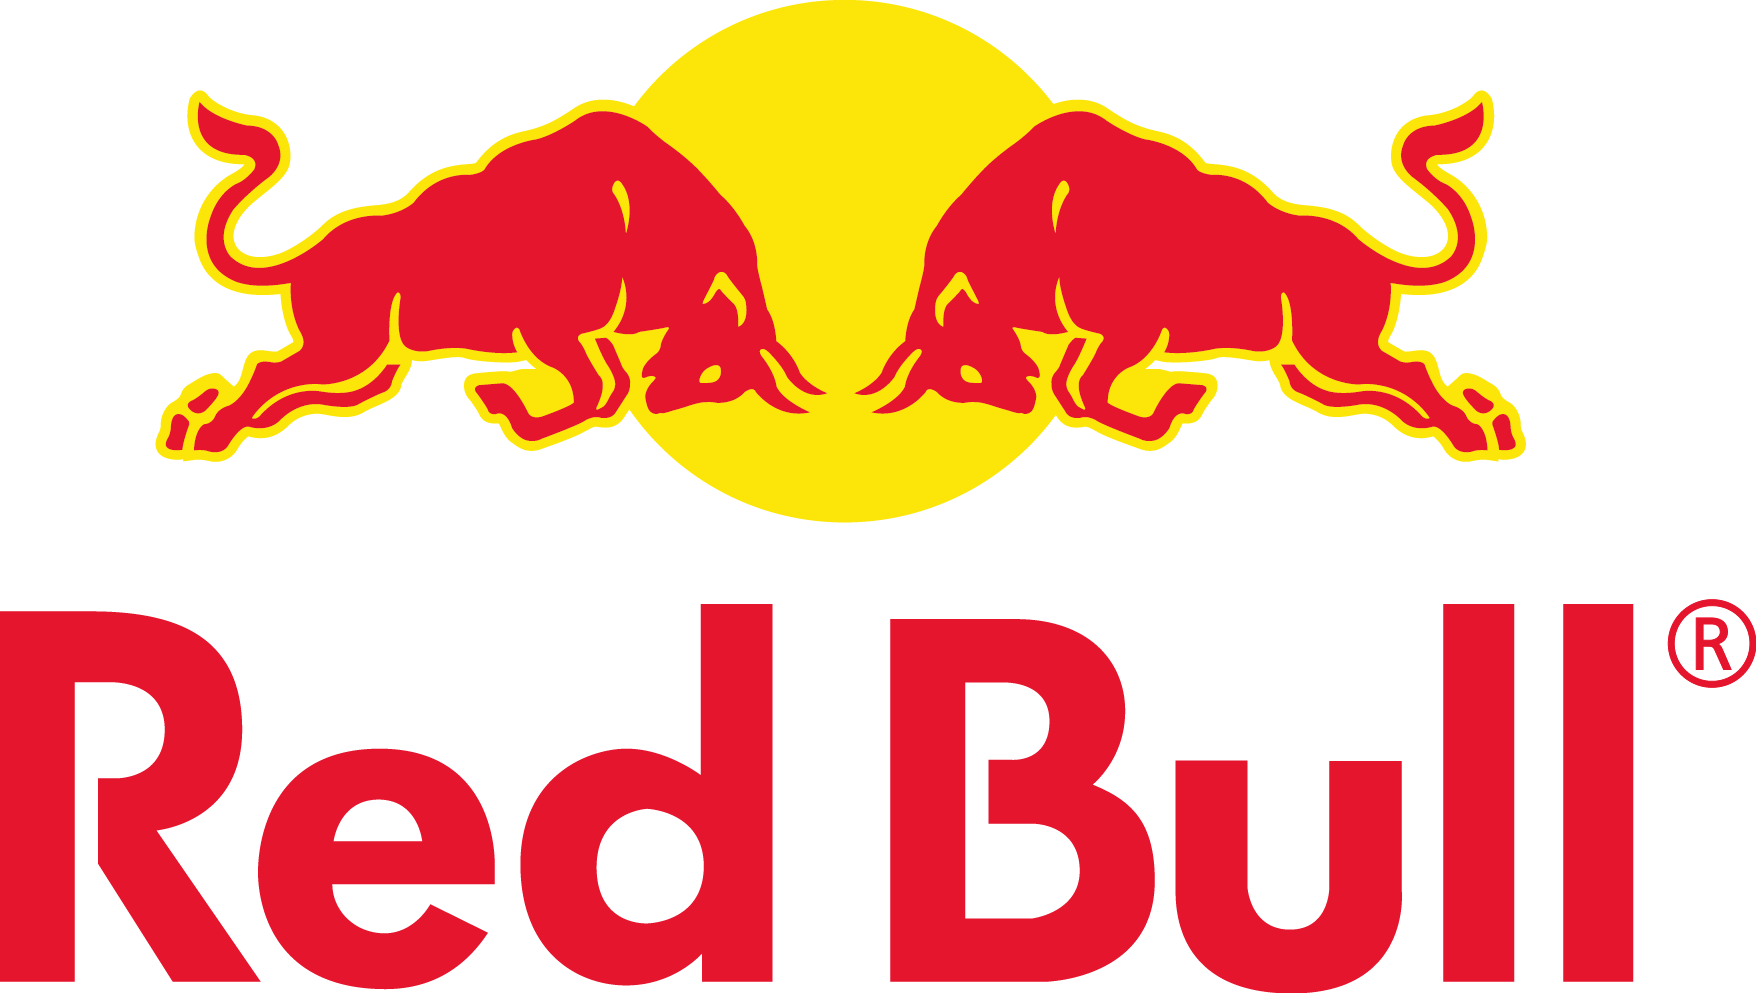 red bull logo vector eps free download logo icons clipart rh freelogovectors net red bull logo vector cdr red bull logo vector download